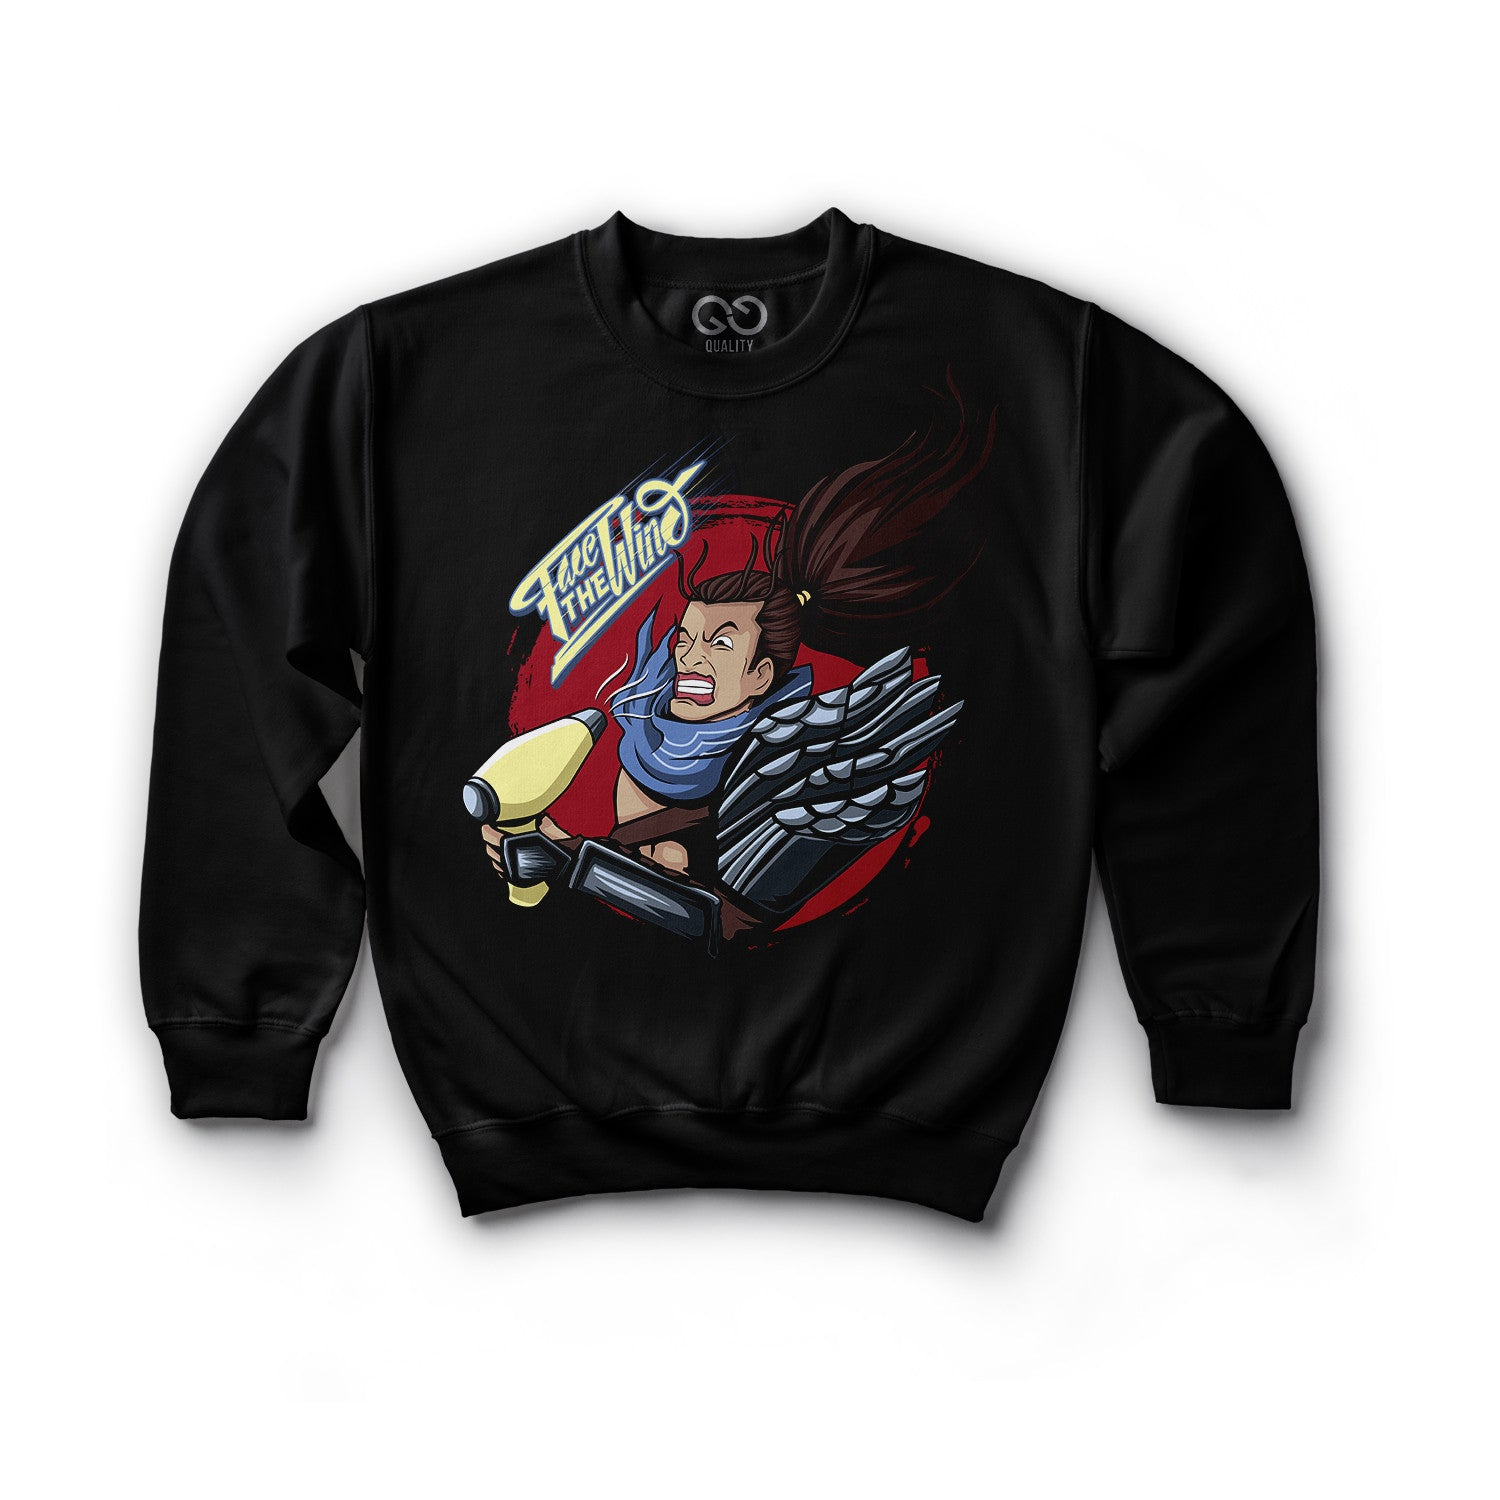 YASUO FACE THE WIND (Sweatshirt)